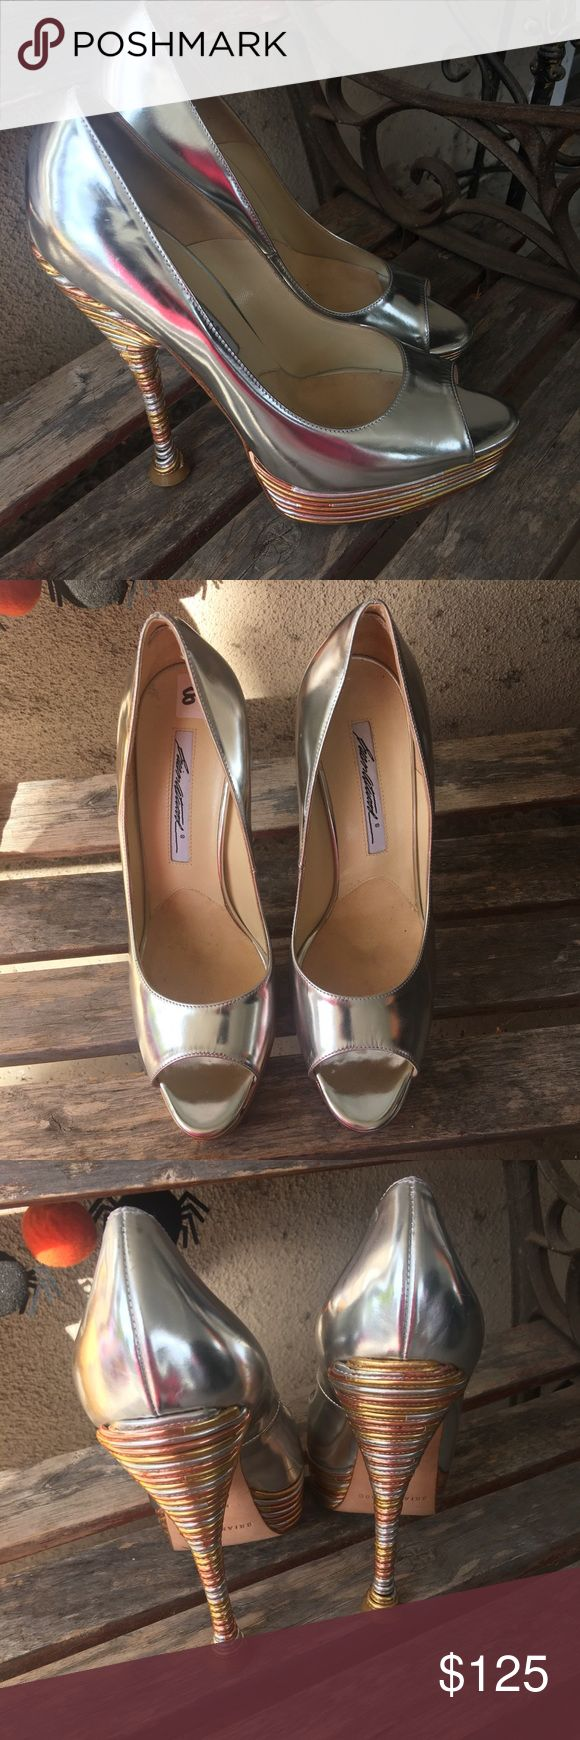 "Brian Atwood silver peep toe heels size 38 Brian Atwood silver peep toe heels size 38. Heel is 6"". Multiple scuffs throughout shoes.  Not very noticeable because they are metallic. Leather soles made in Italy Brian Atwood Shoes Heels"